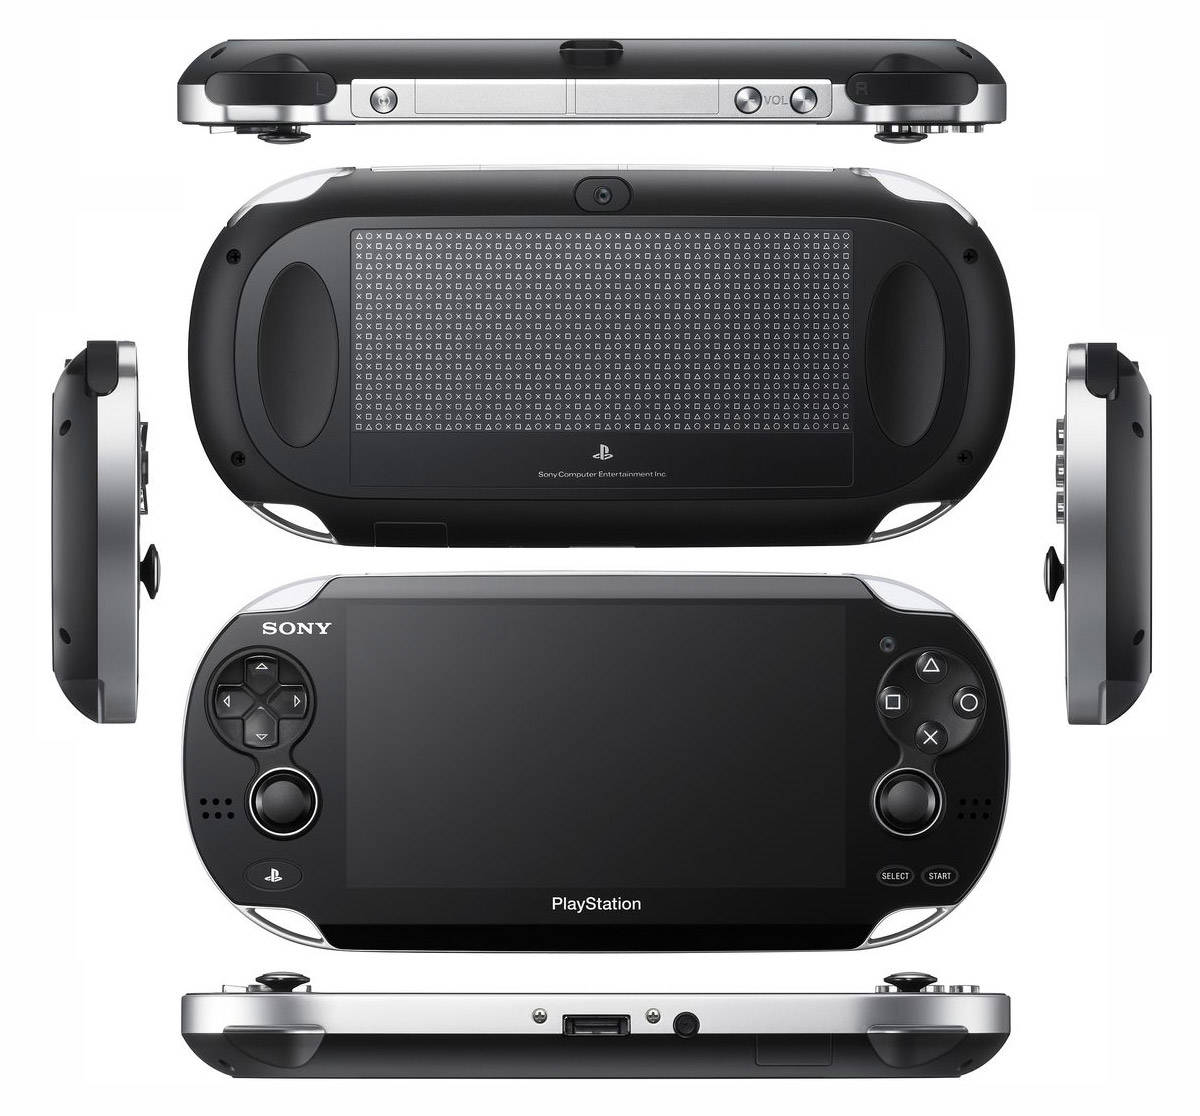 Sony Ps Vita Game Cartridge : Playstation vita launch guide vamers